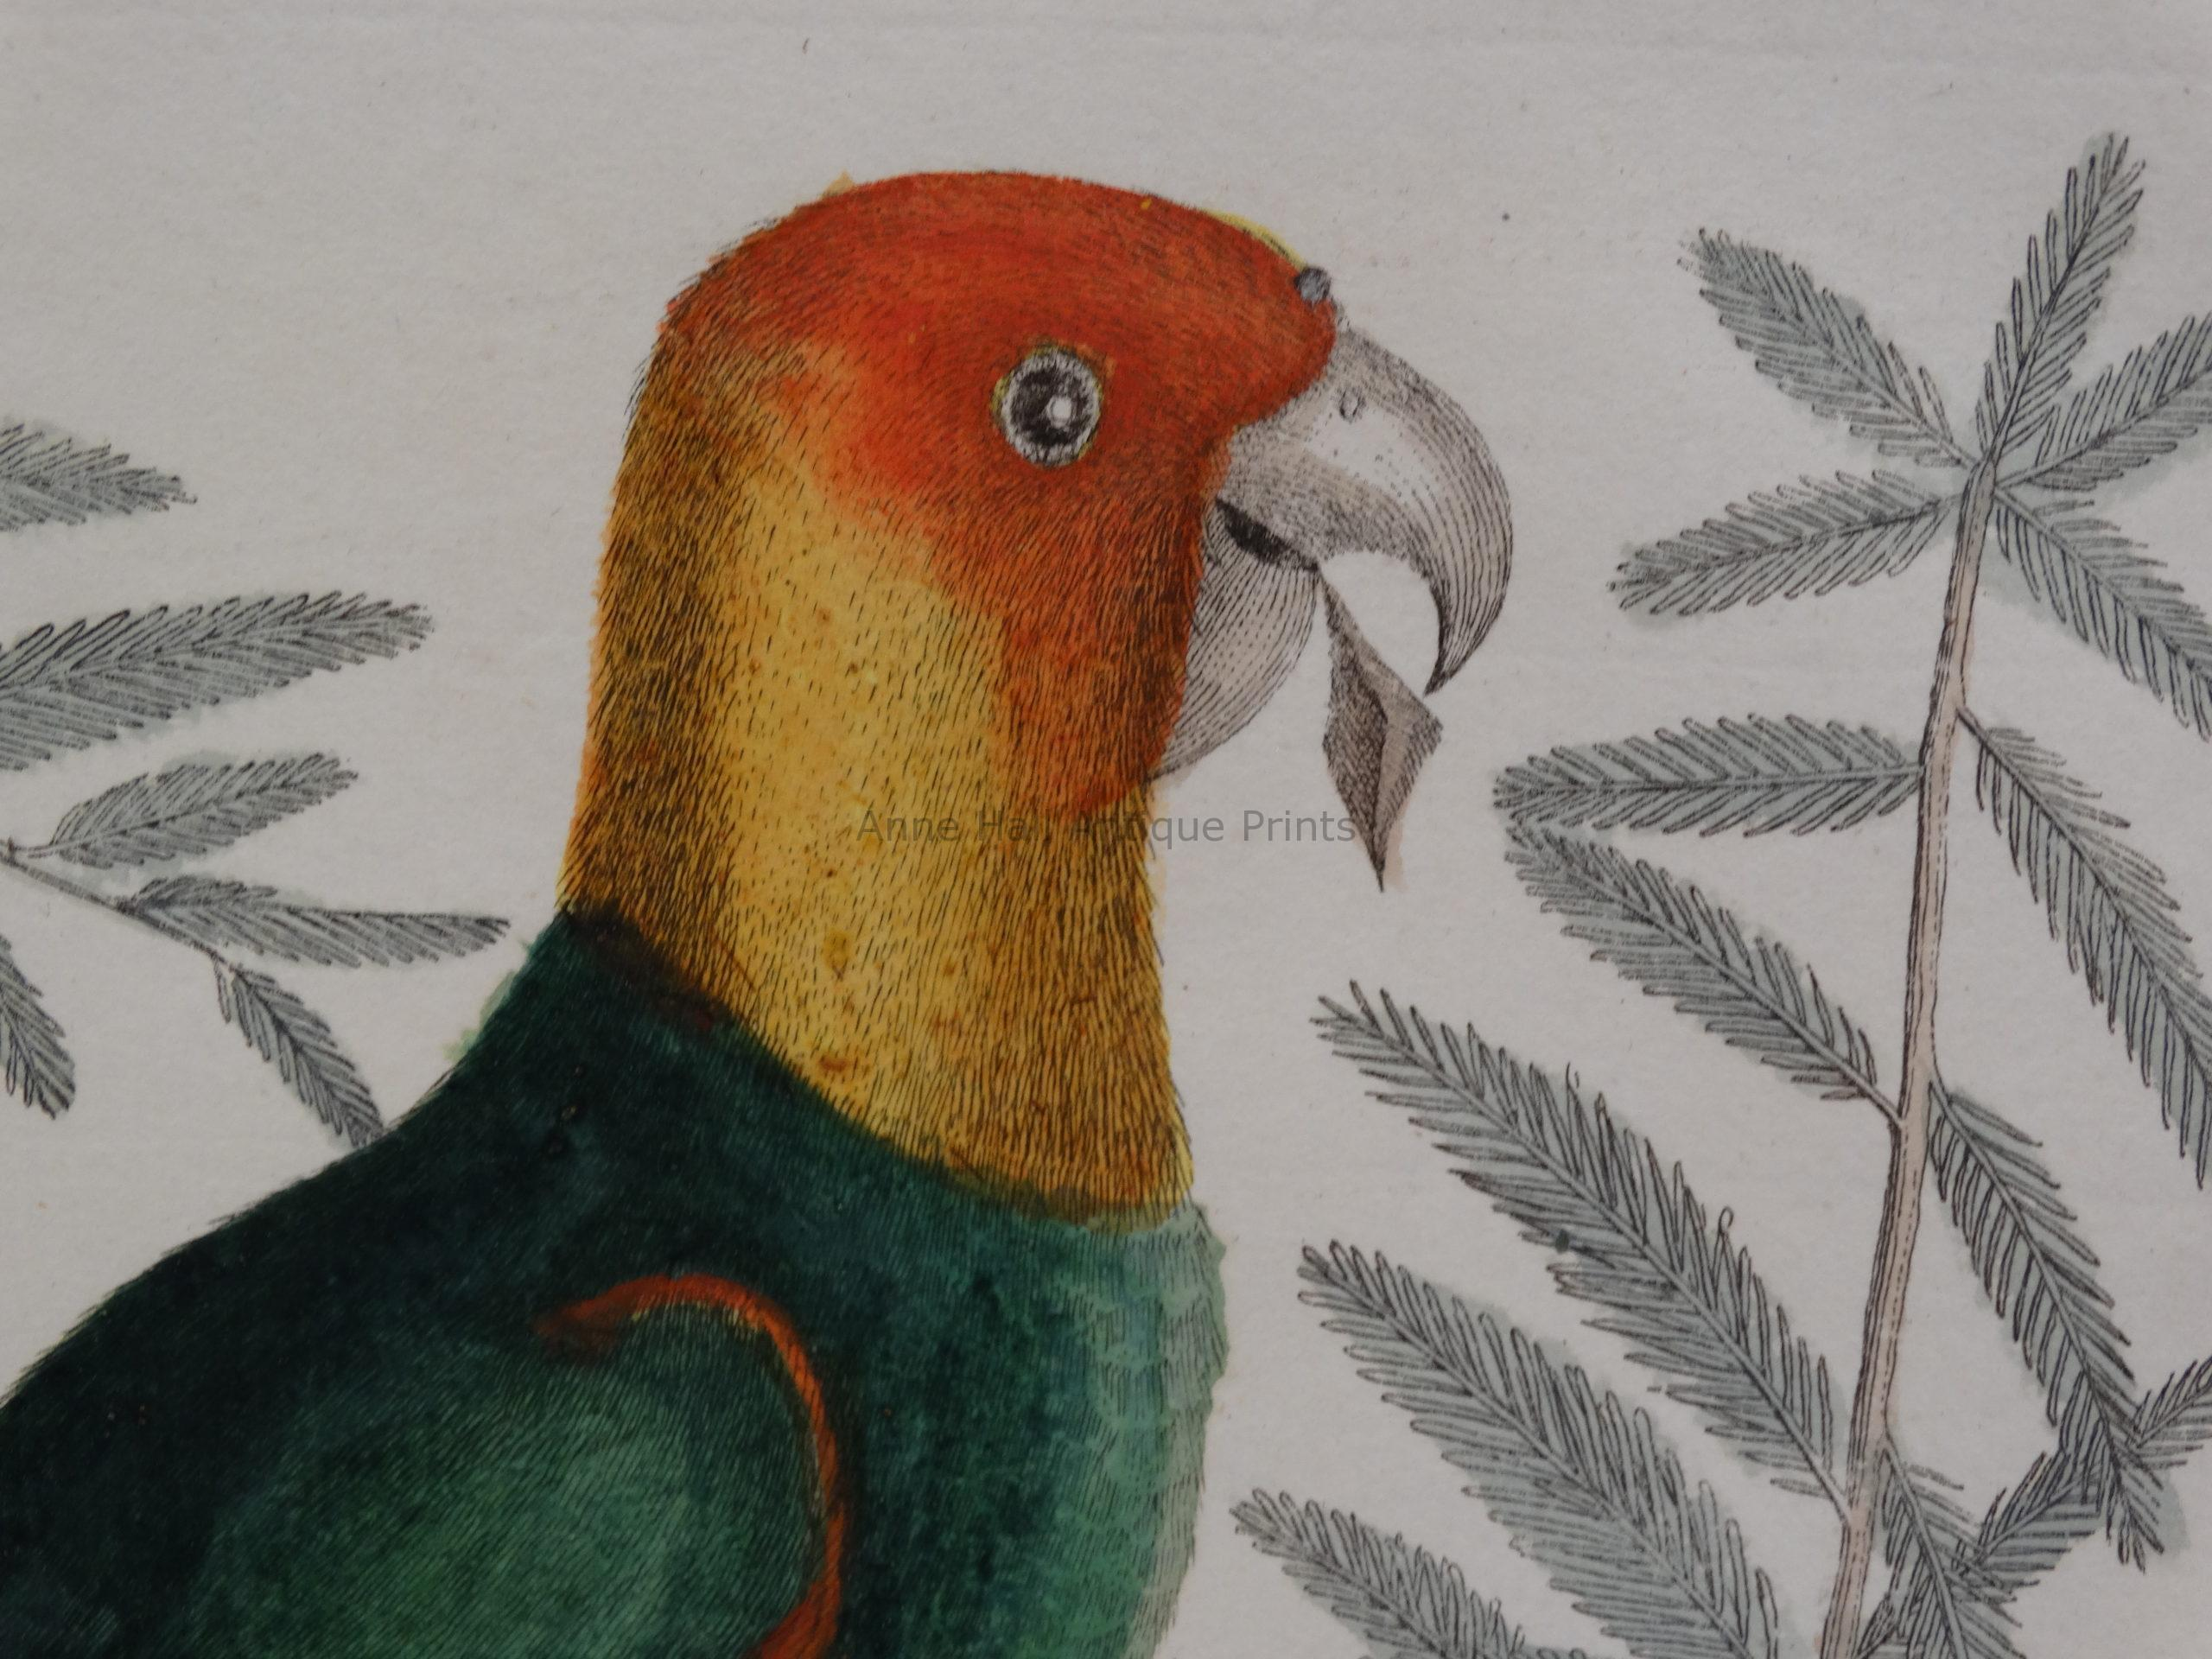 Close up of the detail in this 18th century engraving of the now extinct Carolina Parakeet Parrot. Yellow & orange head.